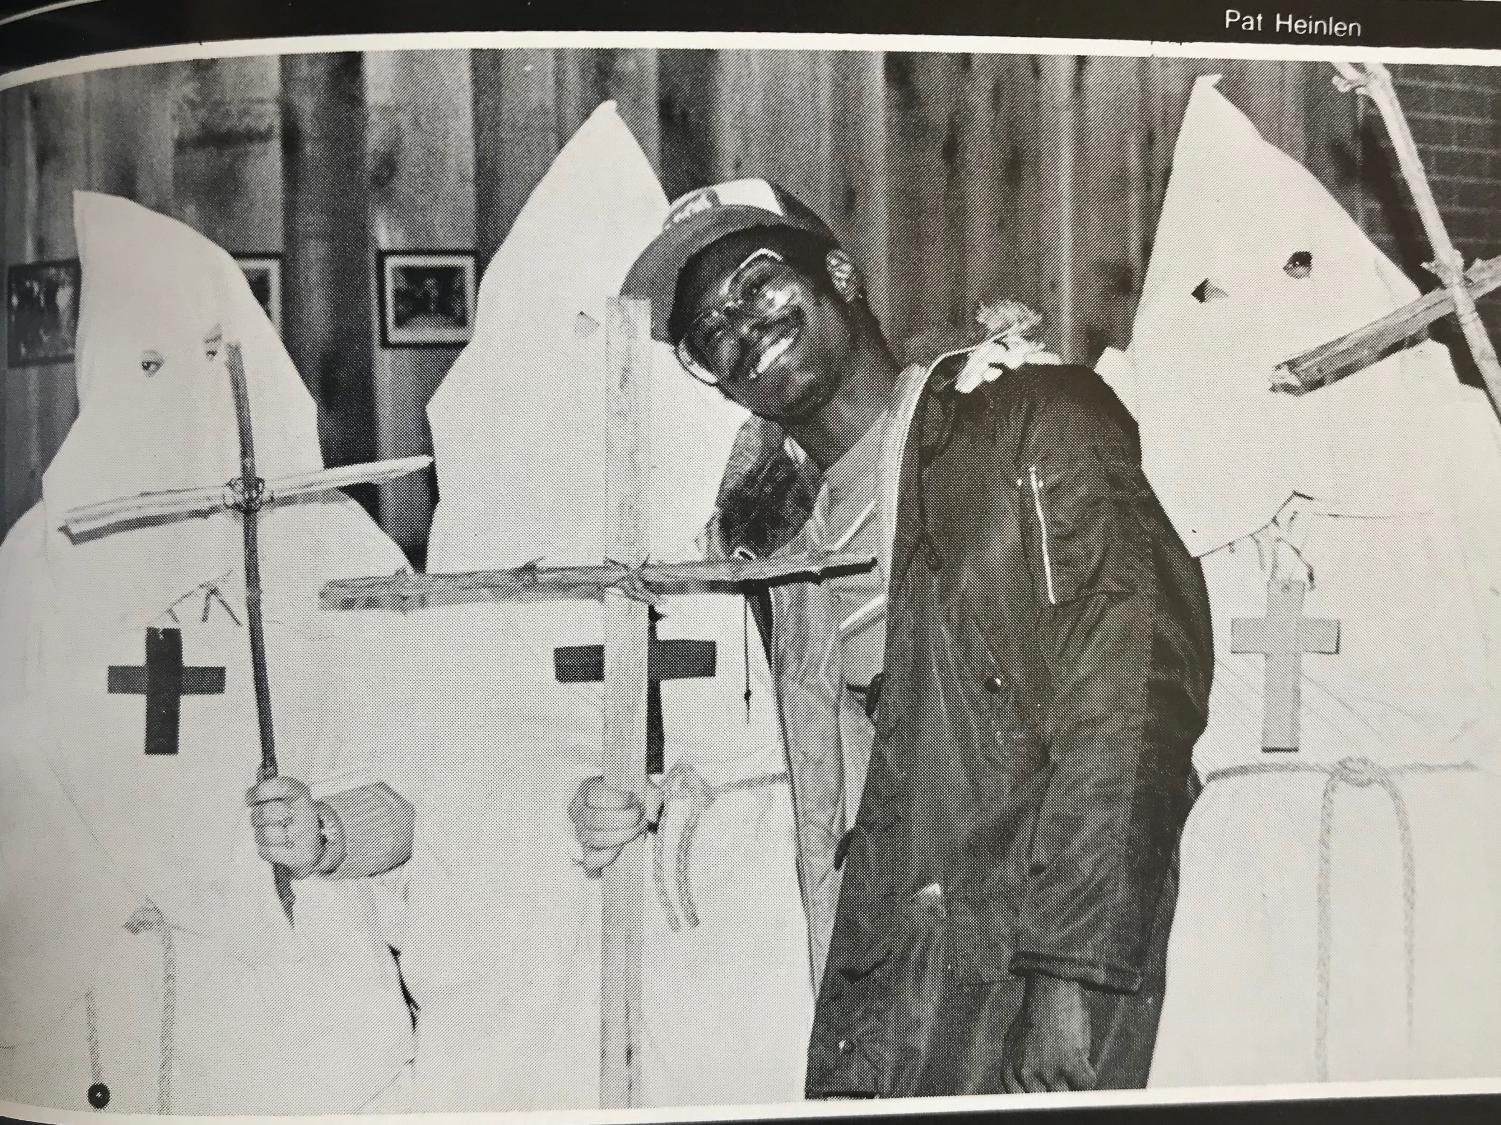 UWL students dress up as KKK members for Halloween. Image retrieved from UWL's 1979 Yearbook.